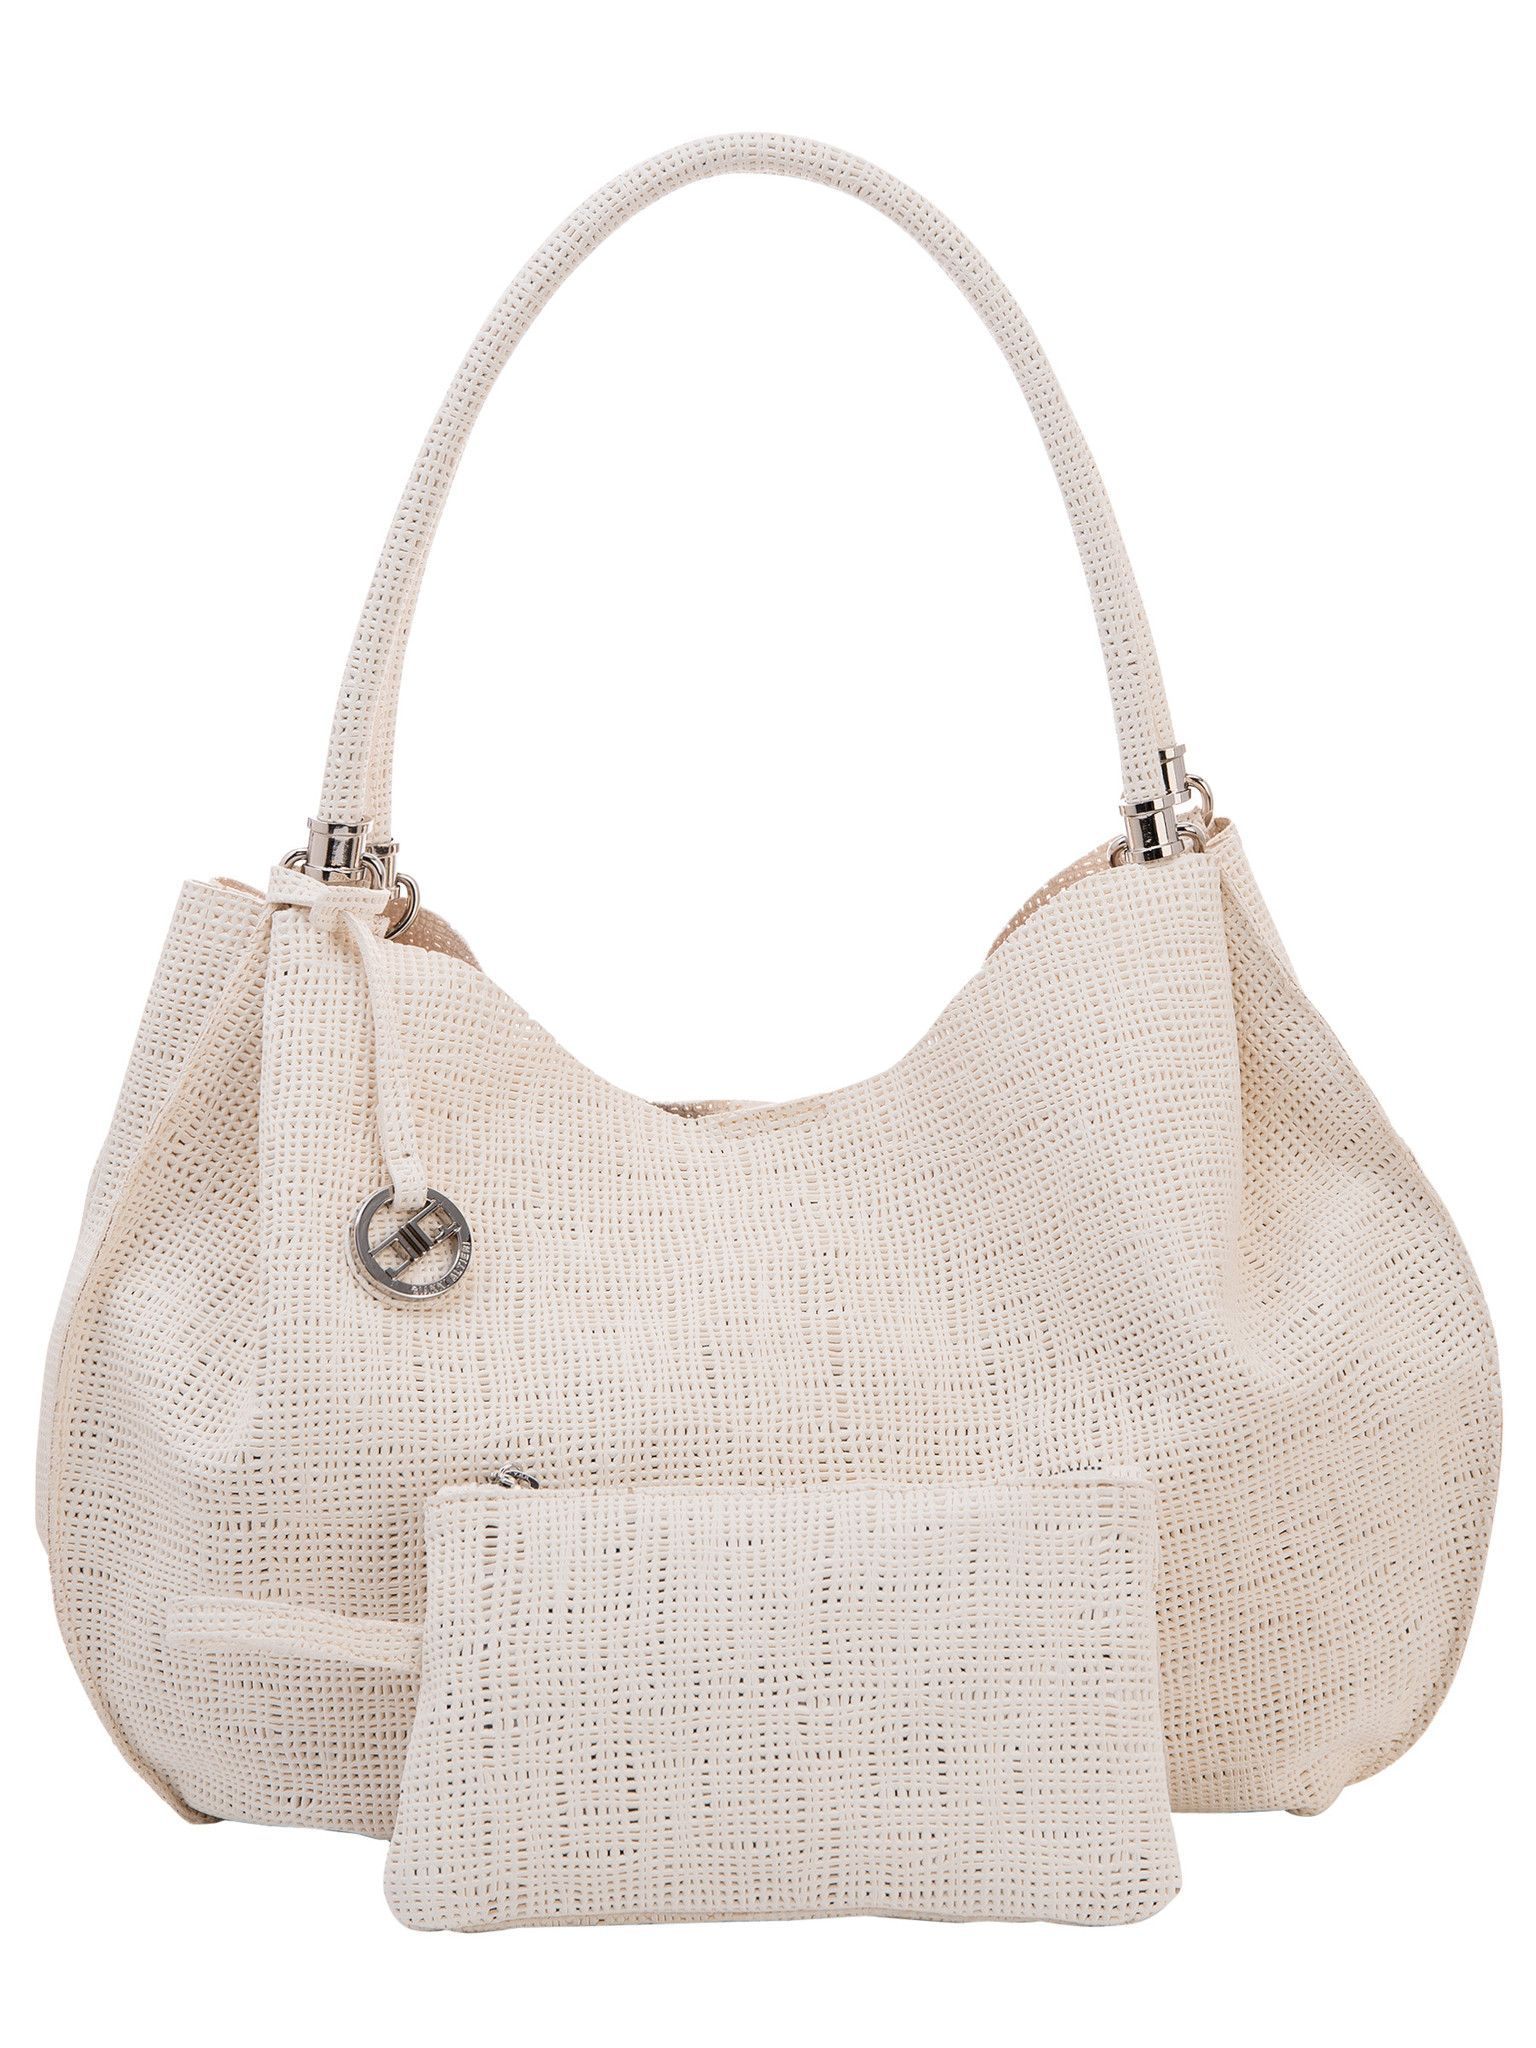 9b7f0b888fef White Italian Leather Hobo Handbag with separate Pouch. A beautiful and  unique bag made from perforated Italian leather in a fabulous canvas  pattern.